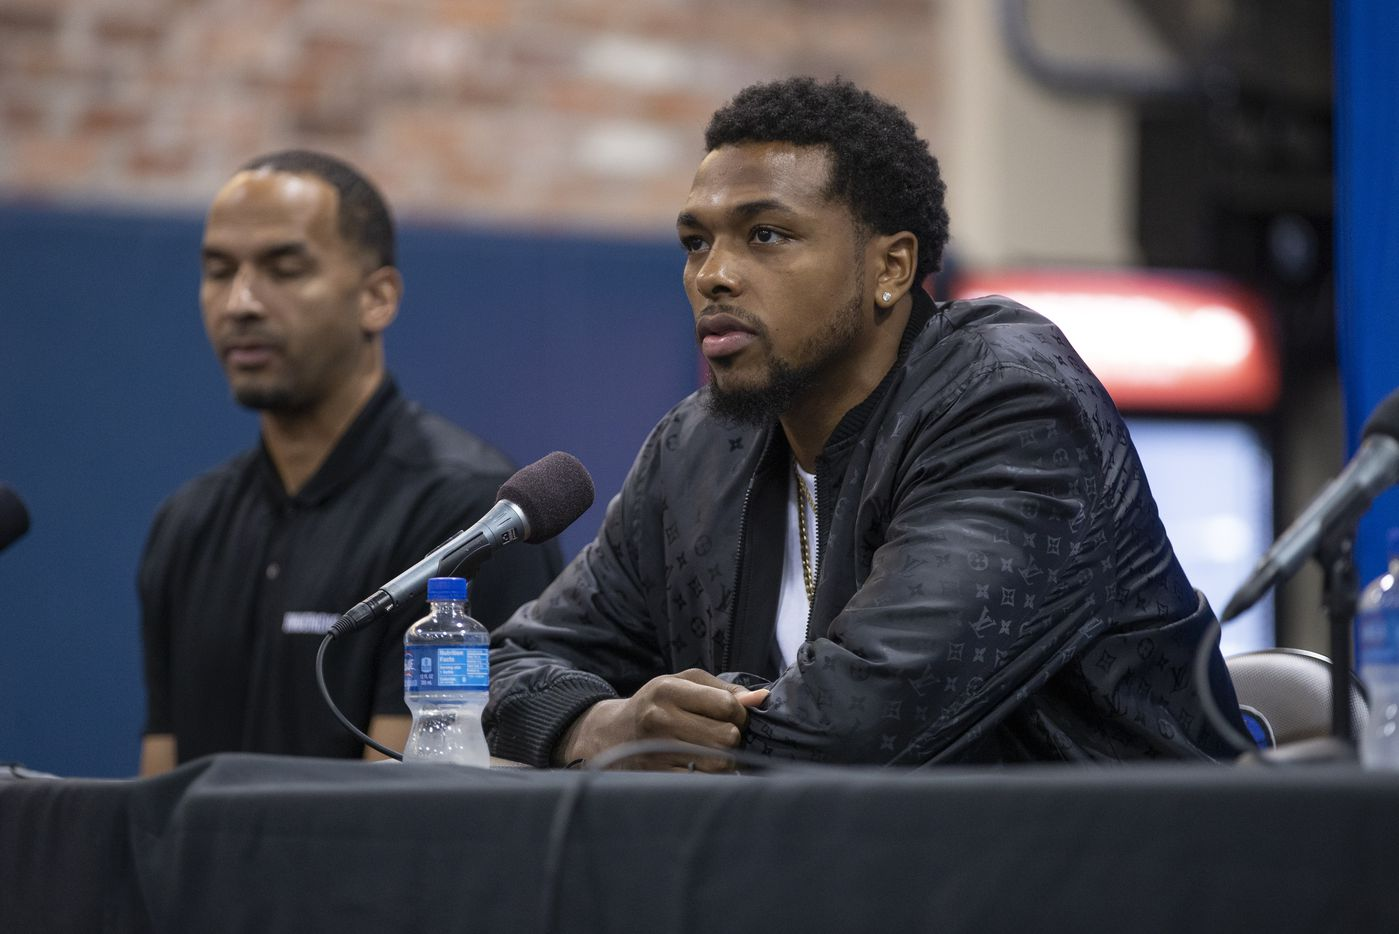 Dallas Mavericks forward Sterling Brown speaks during a press conference in Dallas, Friday, August 27, 2021. (Brandon Wade/Special Contributor)